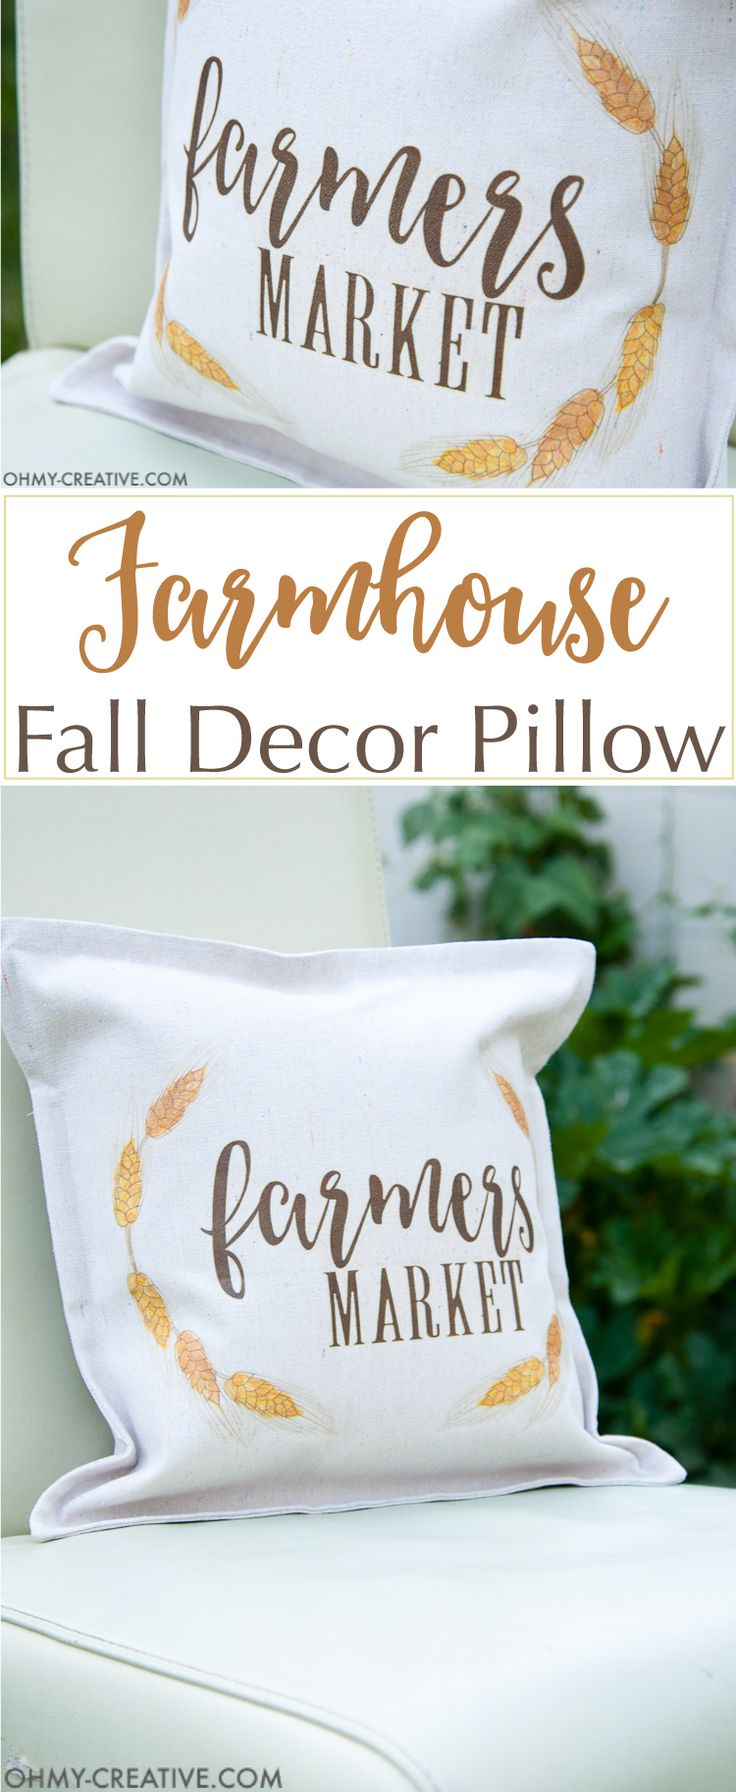 It's time to decorate your home for fall! Make this easy DIY farmhouse fall decor pillow in just a few minutes to celebrate the cooler weather.   OHMY-CREATIVE.COM